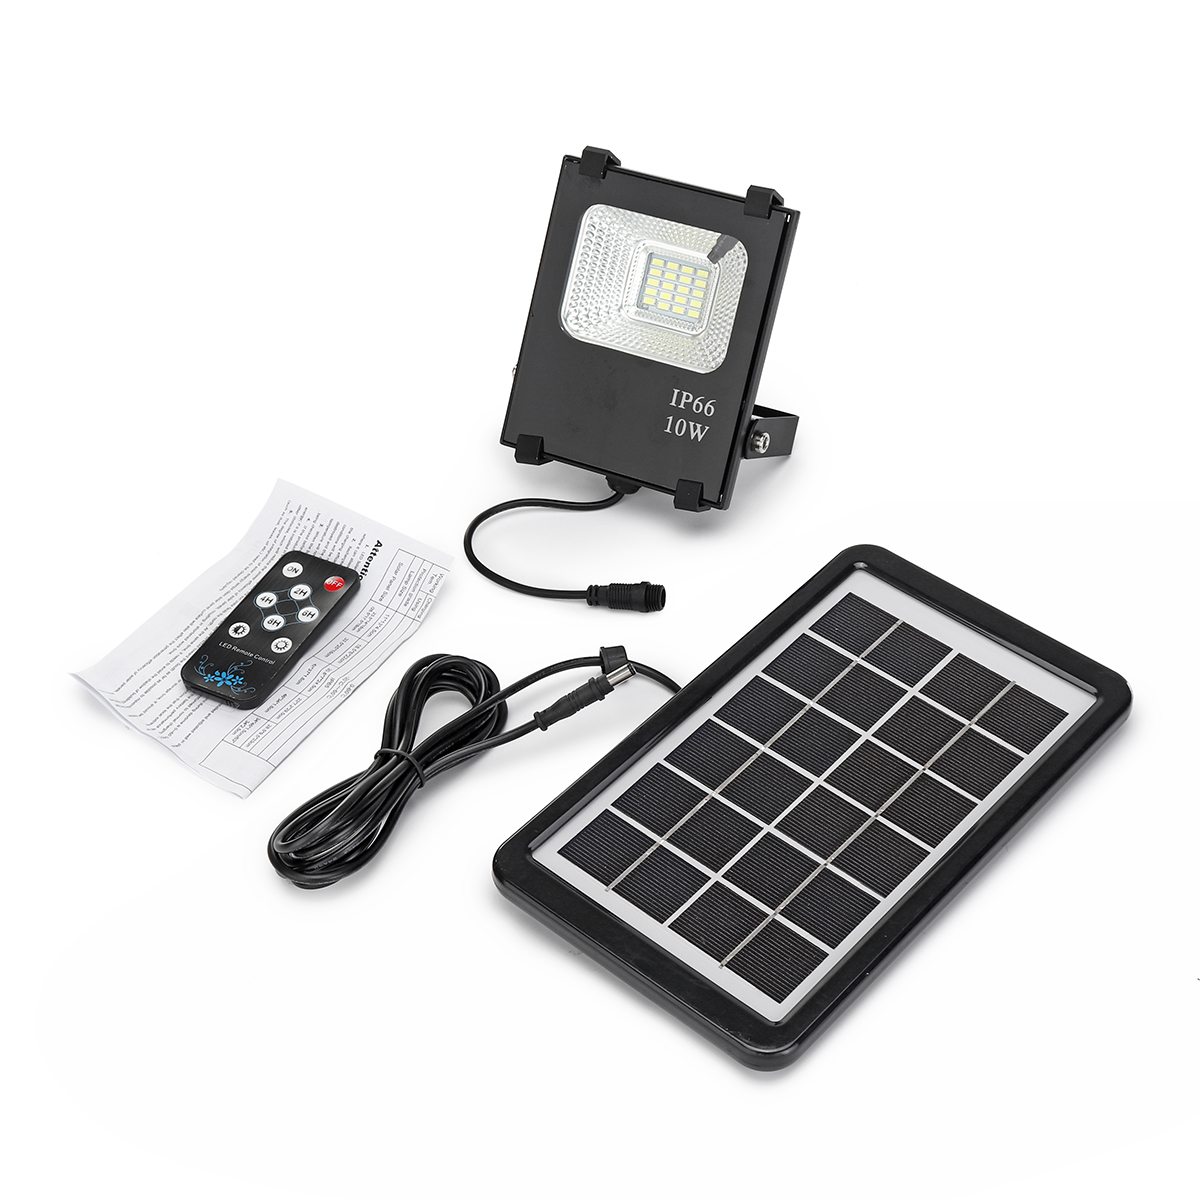 20 LED Solar Power Flood Light Remote Control Outdoor Waterproof Garden Path Lamp Street Light Outdoor Lighting Solar Lamps 3 7v 1000mah 22 led remote control solar lamp hooking camp garden lighting outdoor indoor m25